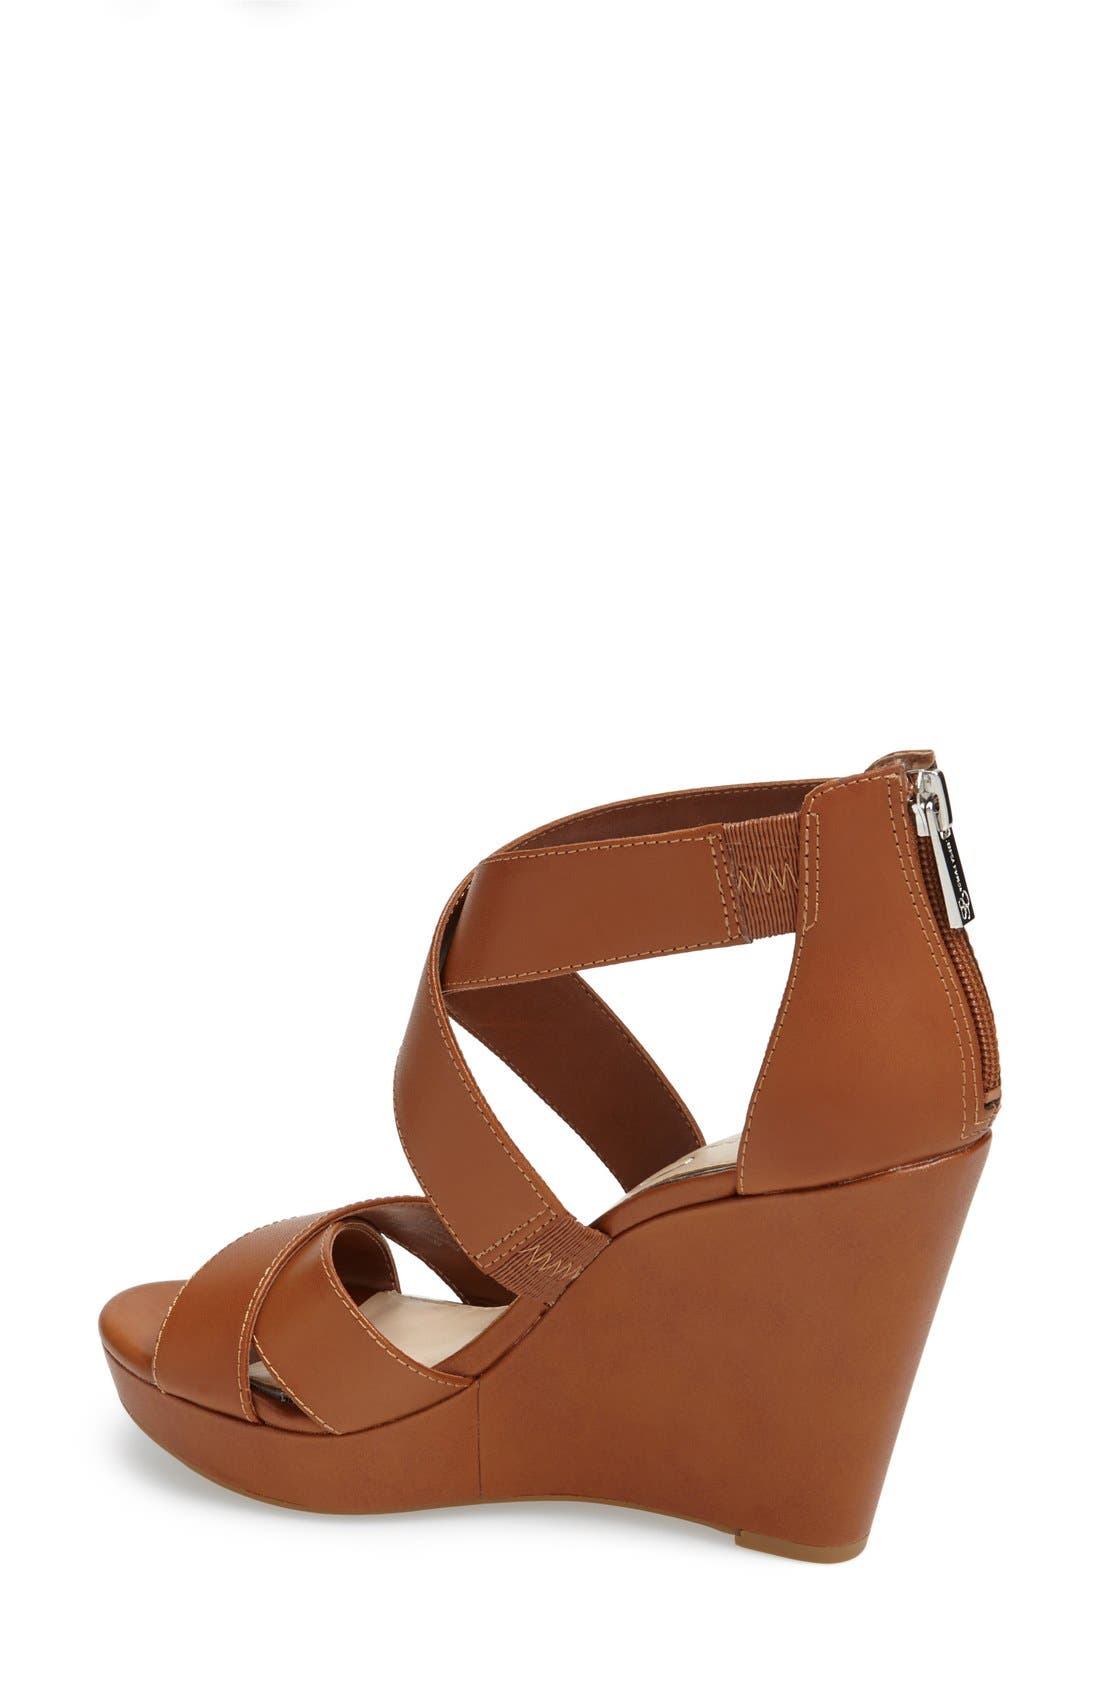 Alternate Image 2  - Jessica Simpson 'Jadyn' Strappy Wedge Sandal (Women)